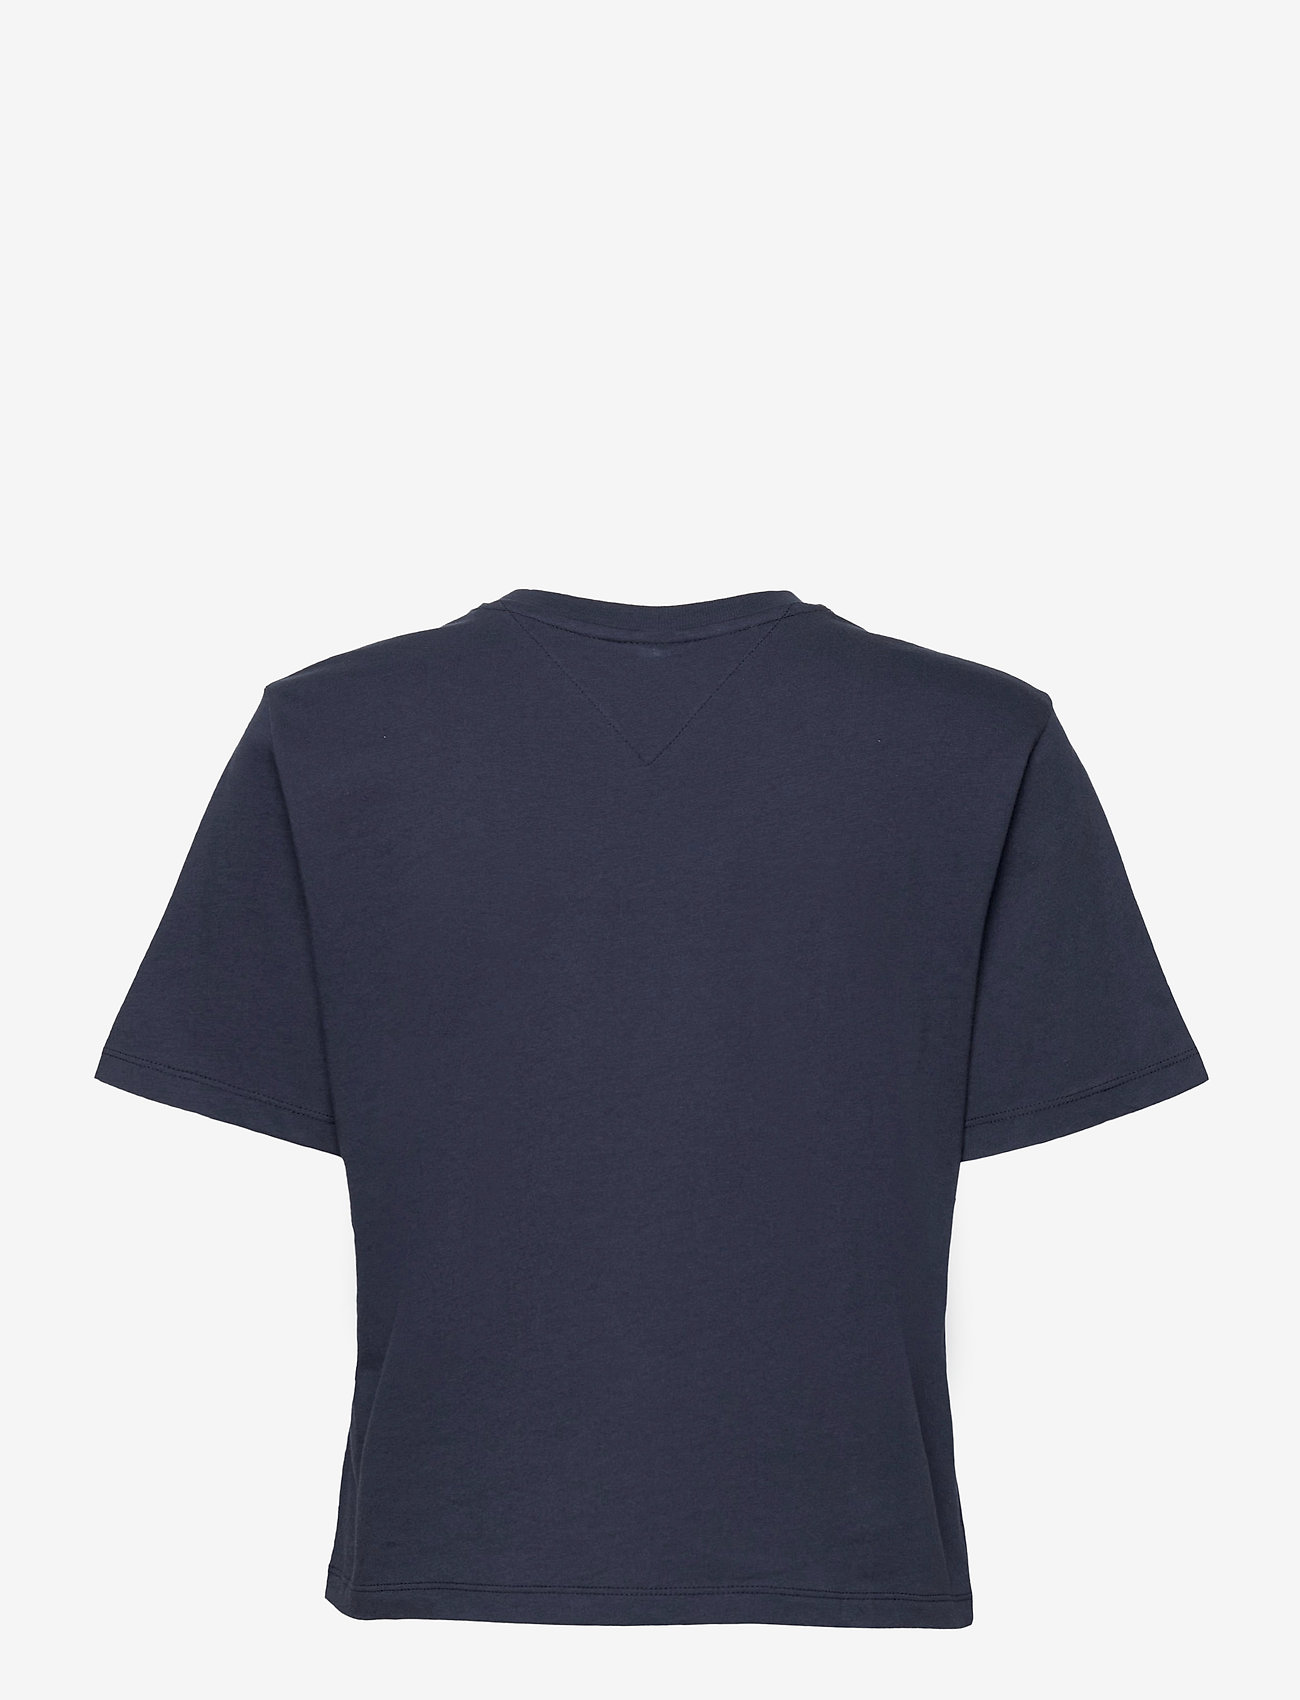 Tommy Jeans - TJW BXY CROP LINEAR LOGO TEE - crop tops - twilight navy - 1